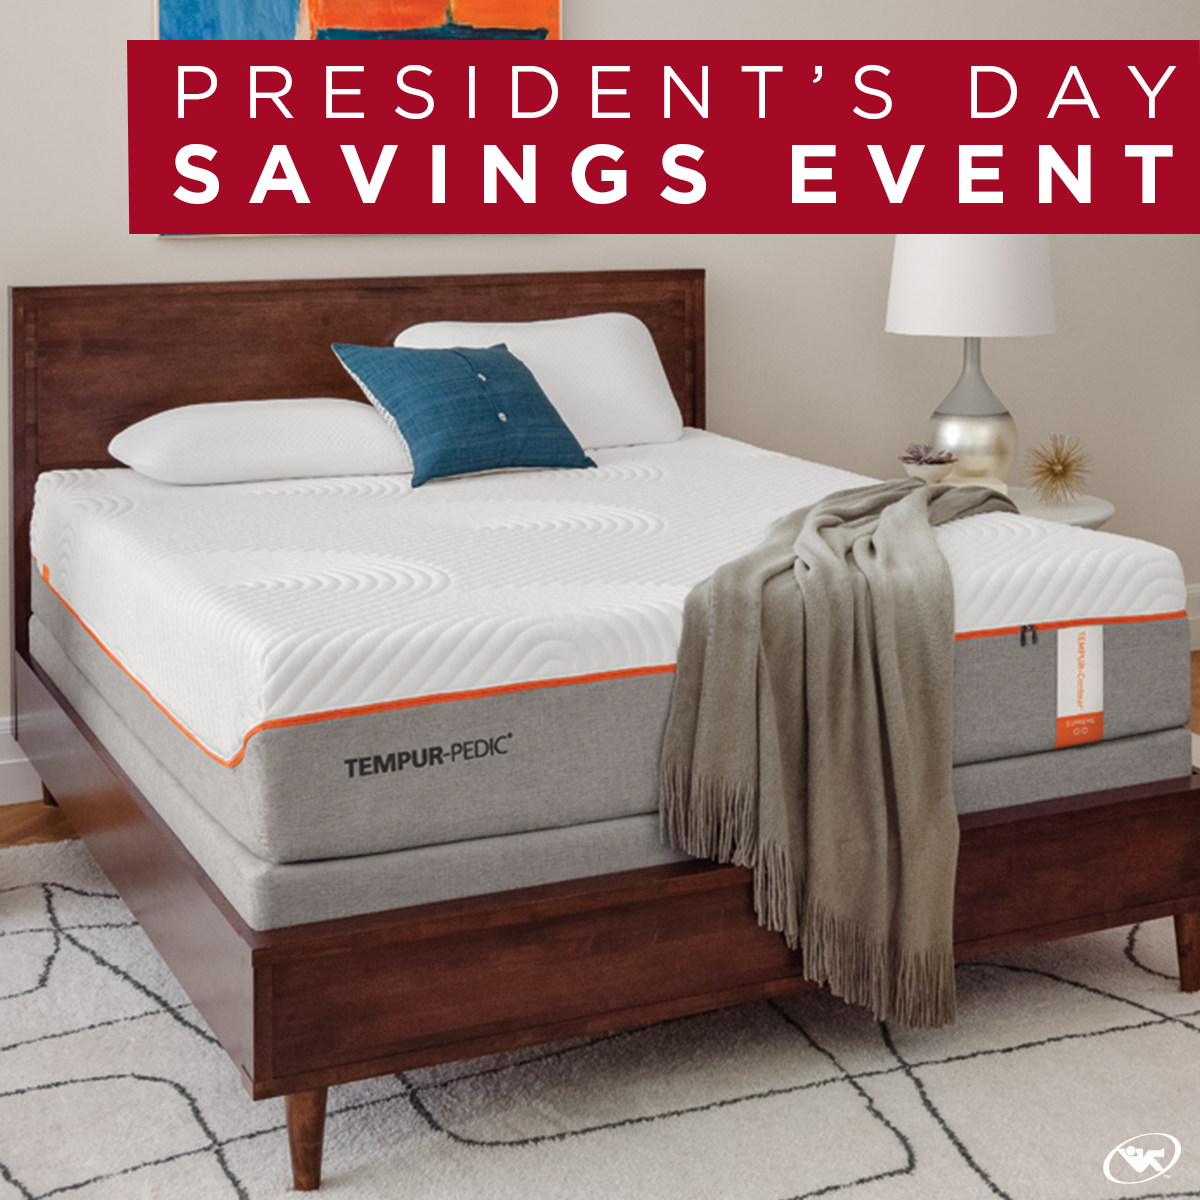 It S Time To Save On Tempur Pedic For A Limited Time Only Save Up To 400 On Select Mattresses And Up To 200 On Firm Mattress Tempurpedic Mattress Mattress